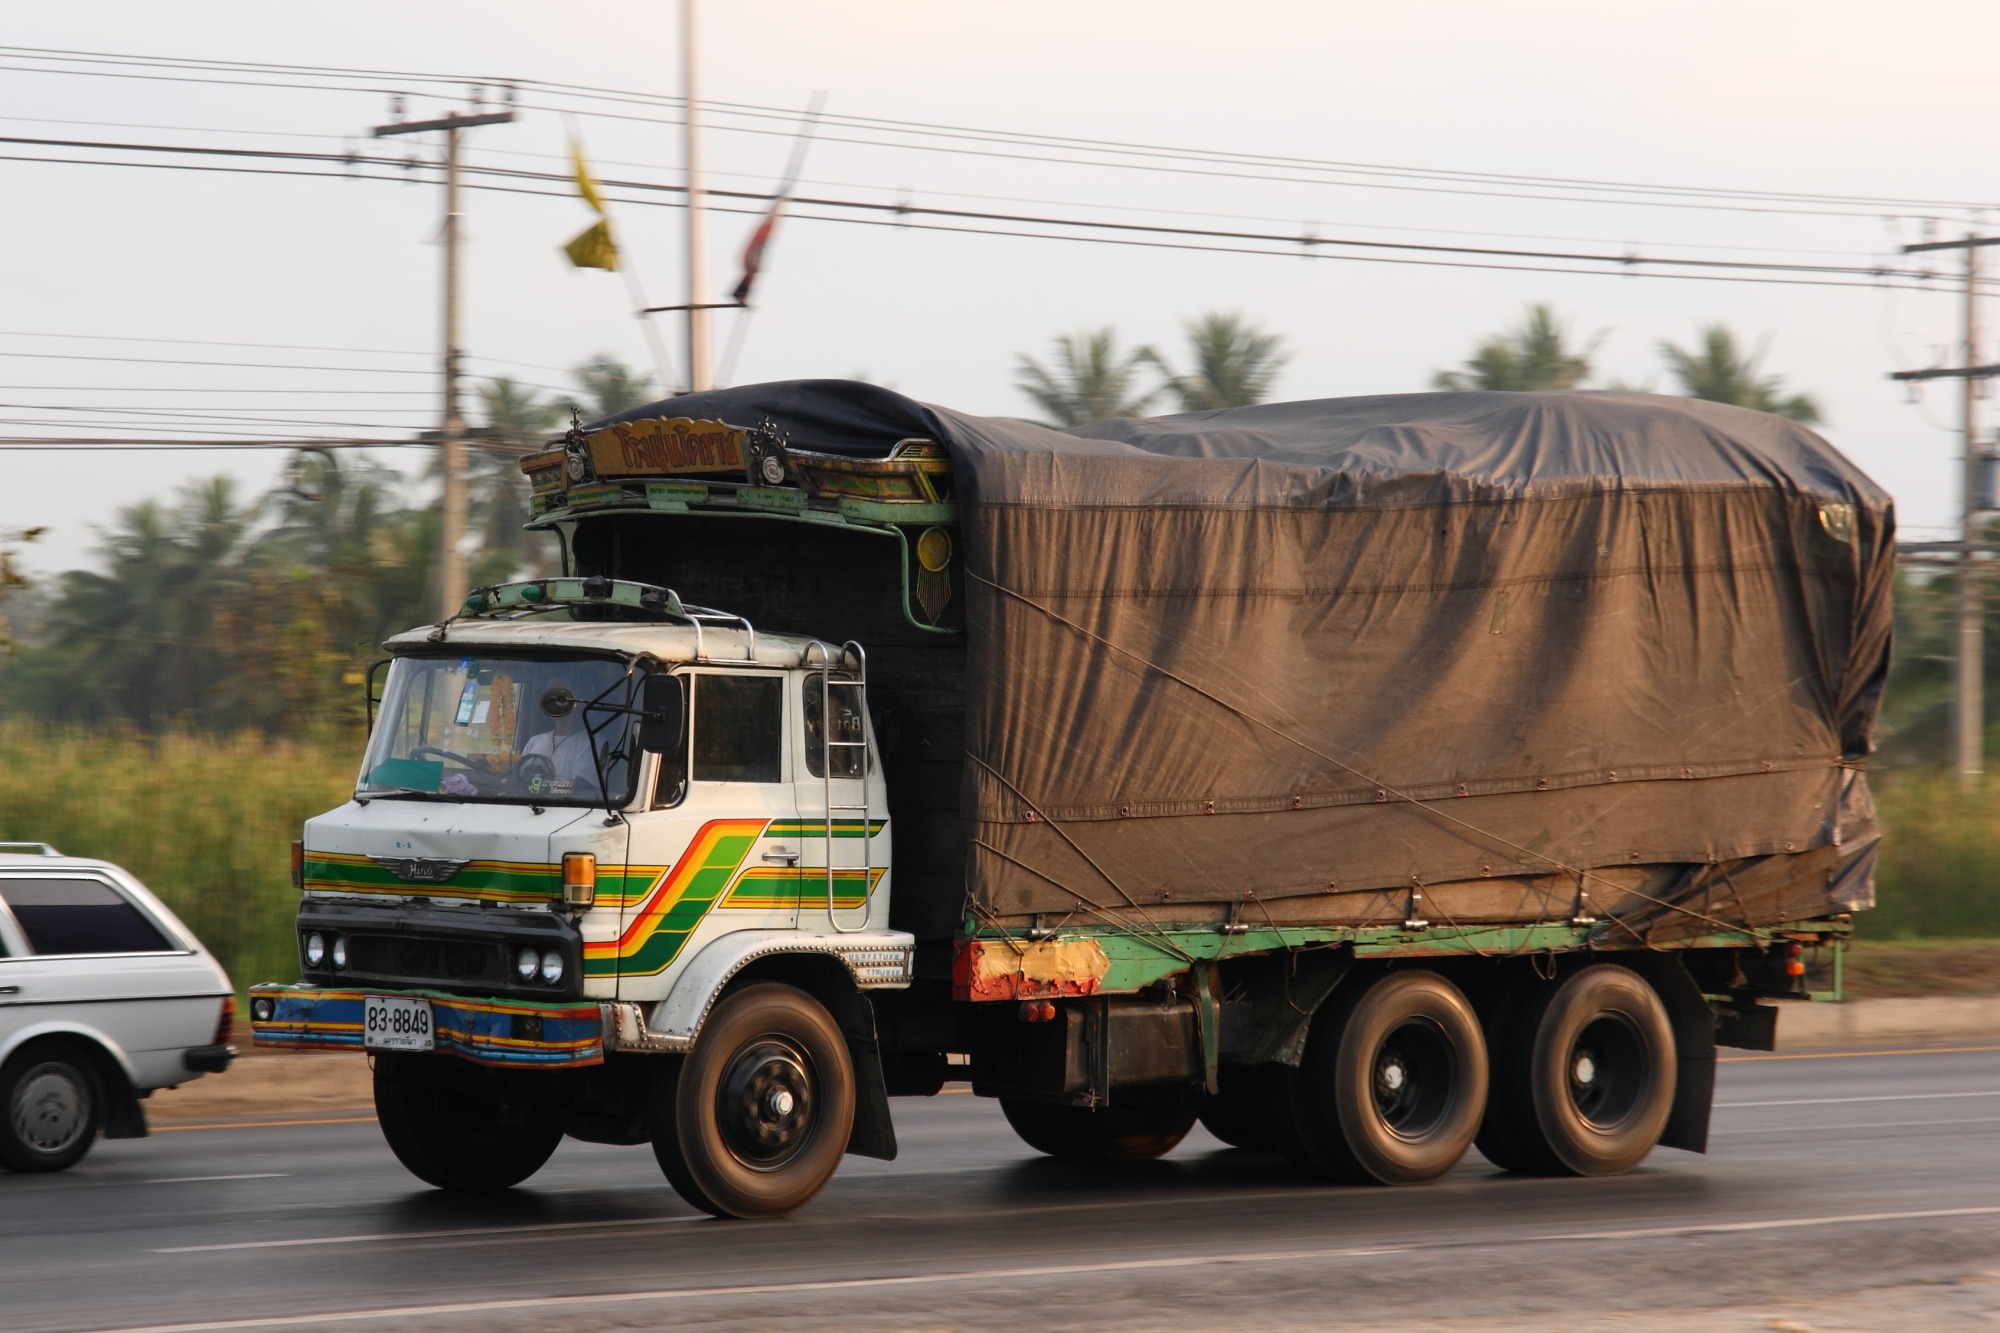 File:Old Hino truck in...